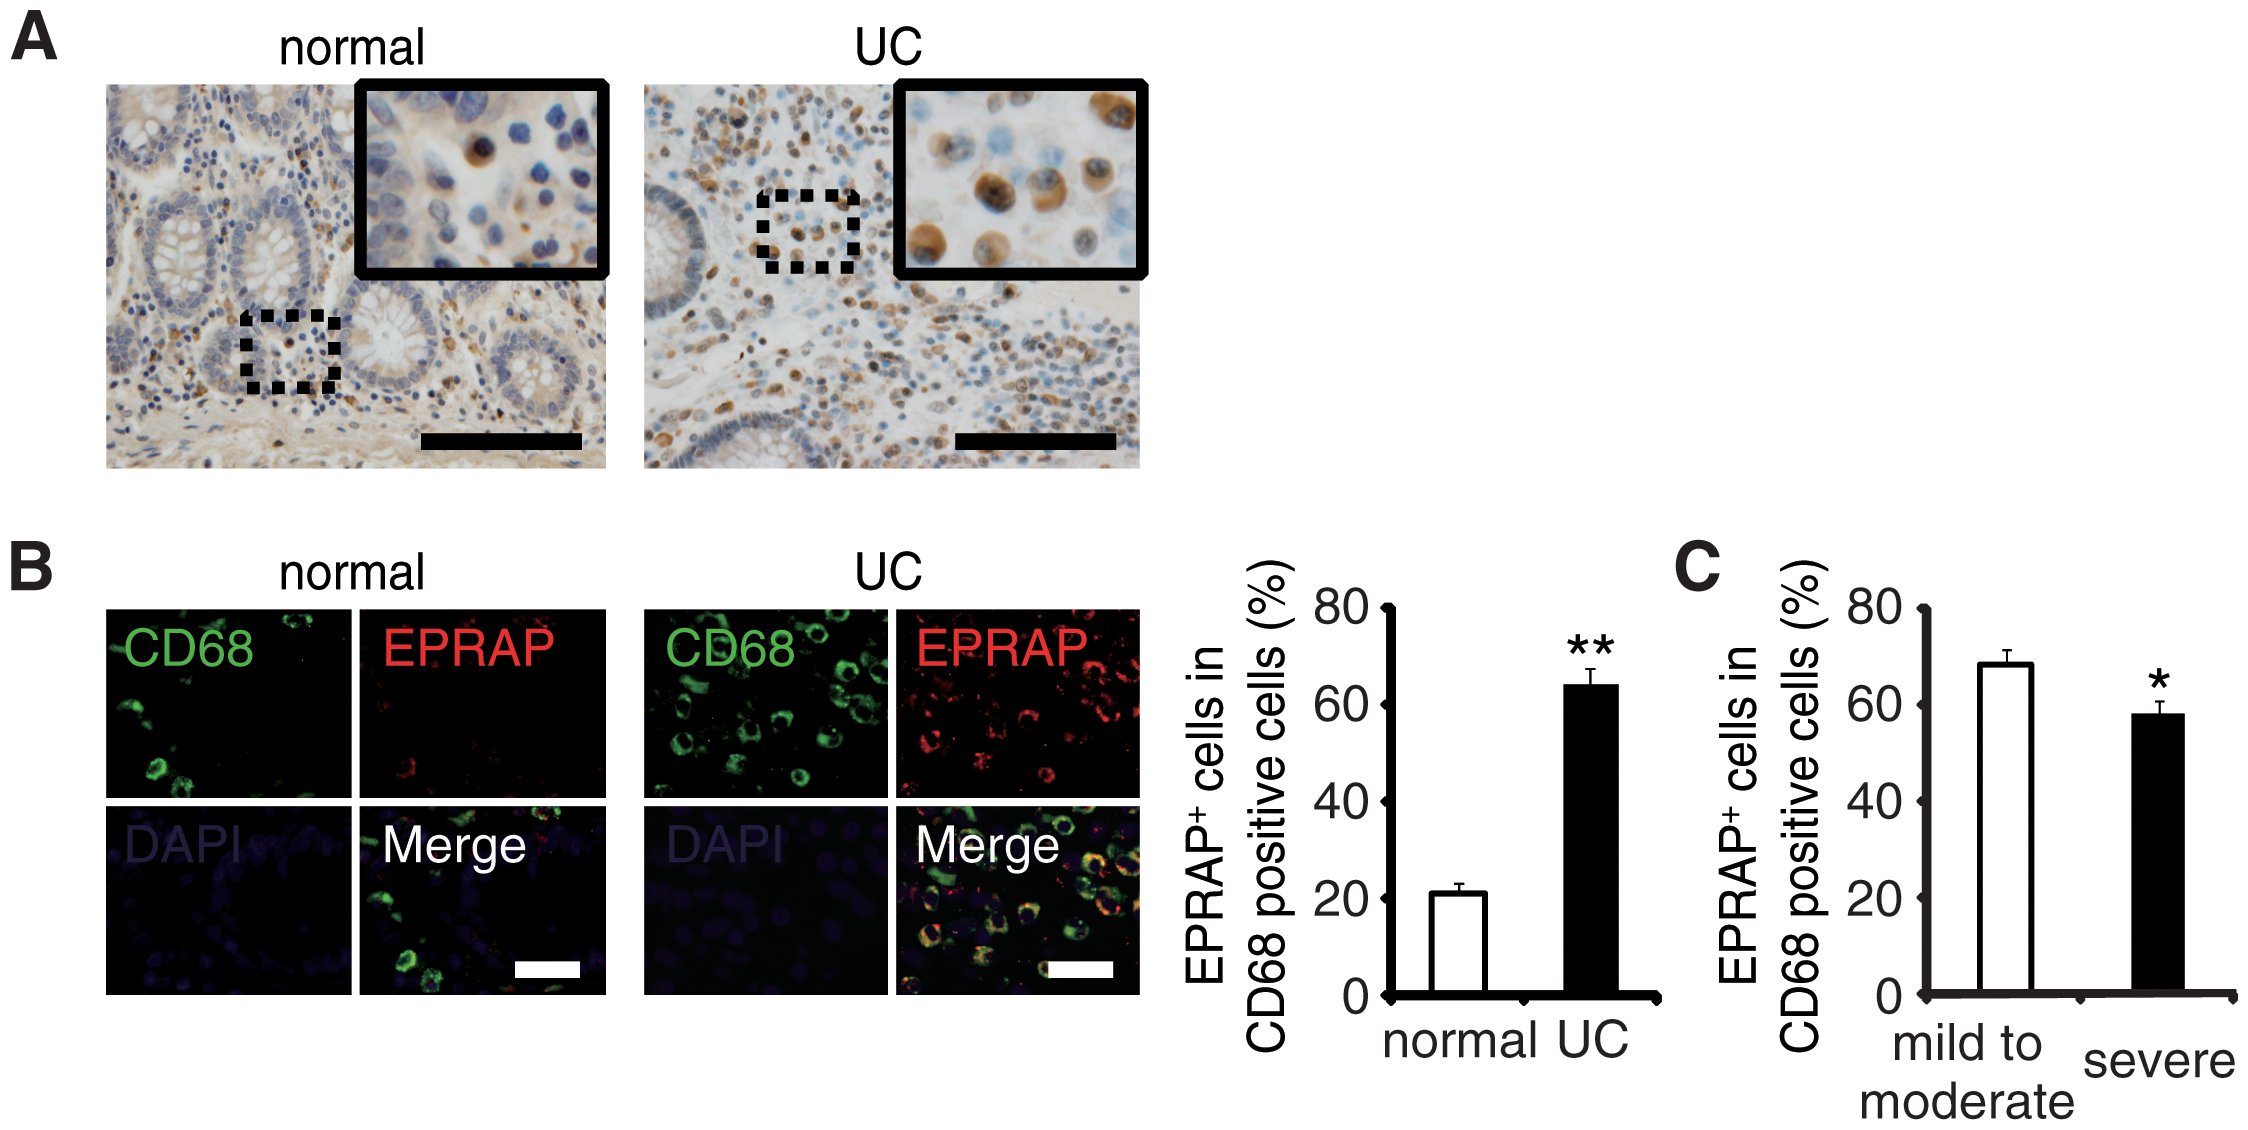 The colons of ulcerative colitis (UC) showed accumulation of EPRAP-positive macrophages.